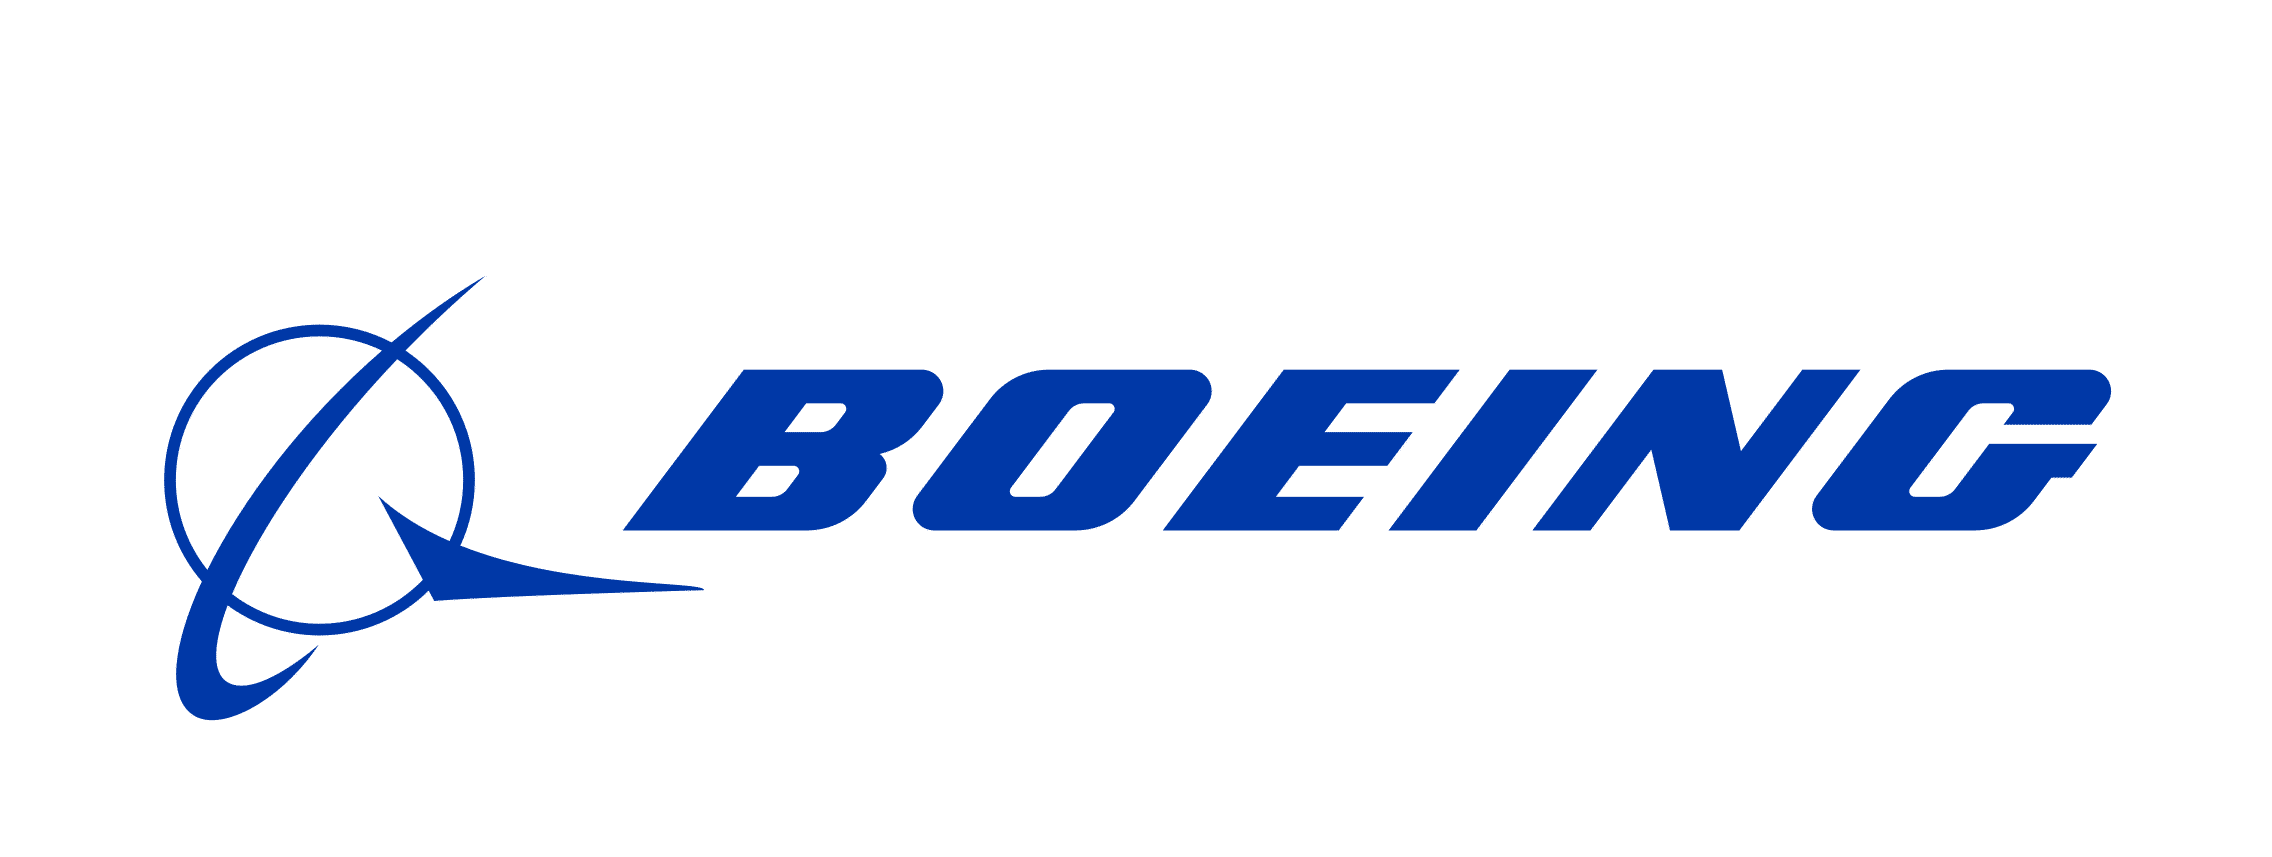 Boeing Lands $11.4 million Contract for SLAM-ER Development